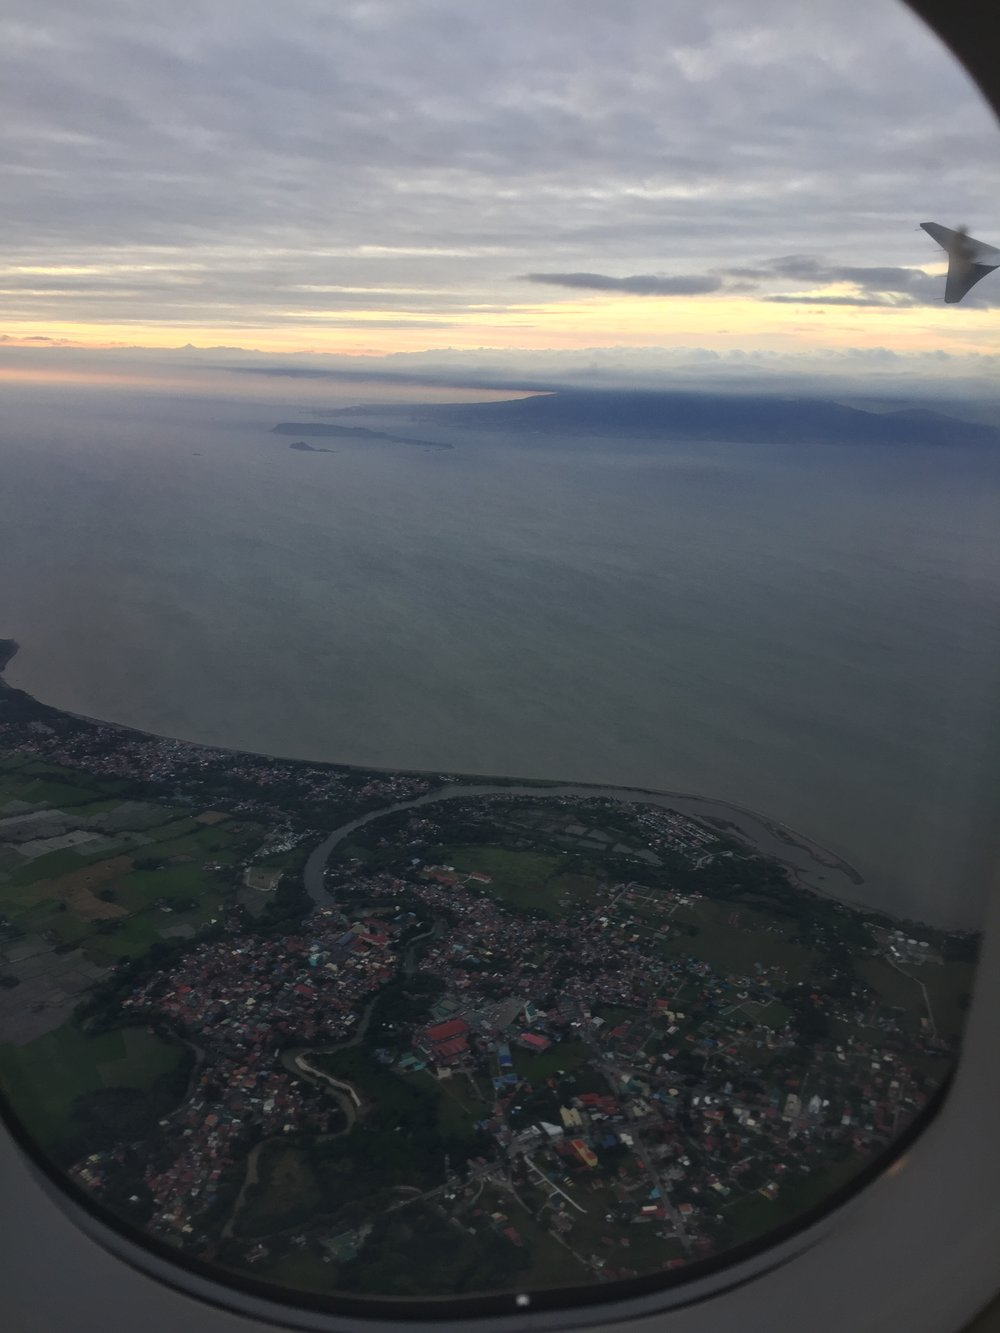 View of Bohol from a plane